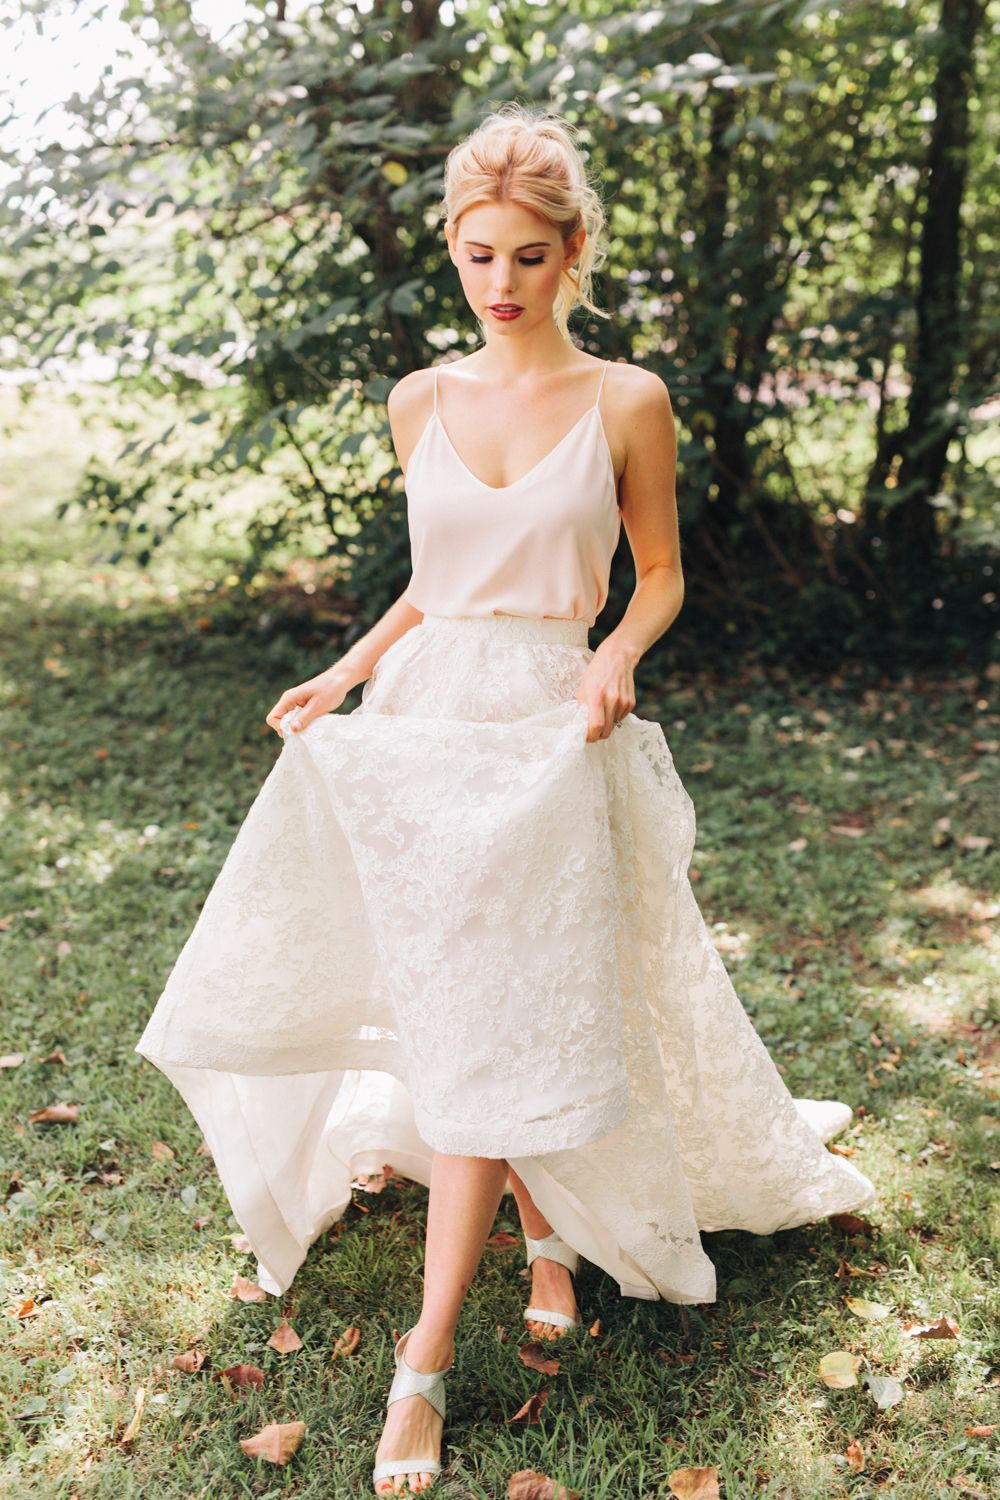 Casual etherial wedding dresses that we think buffy would look